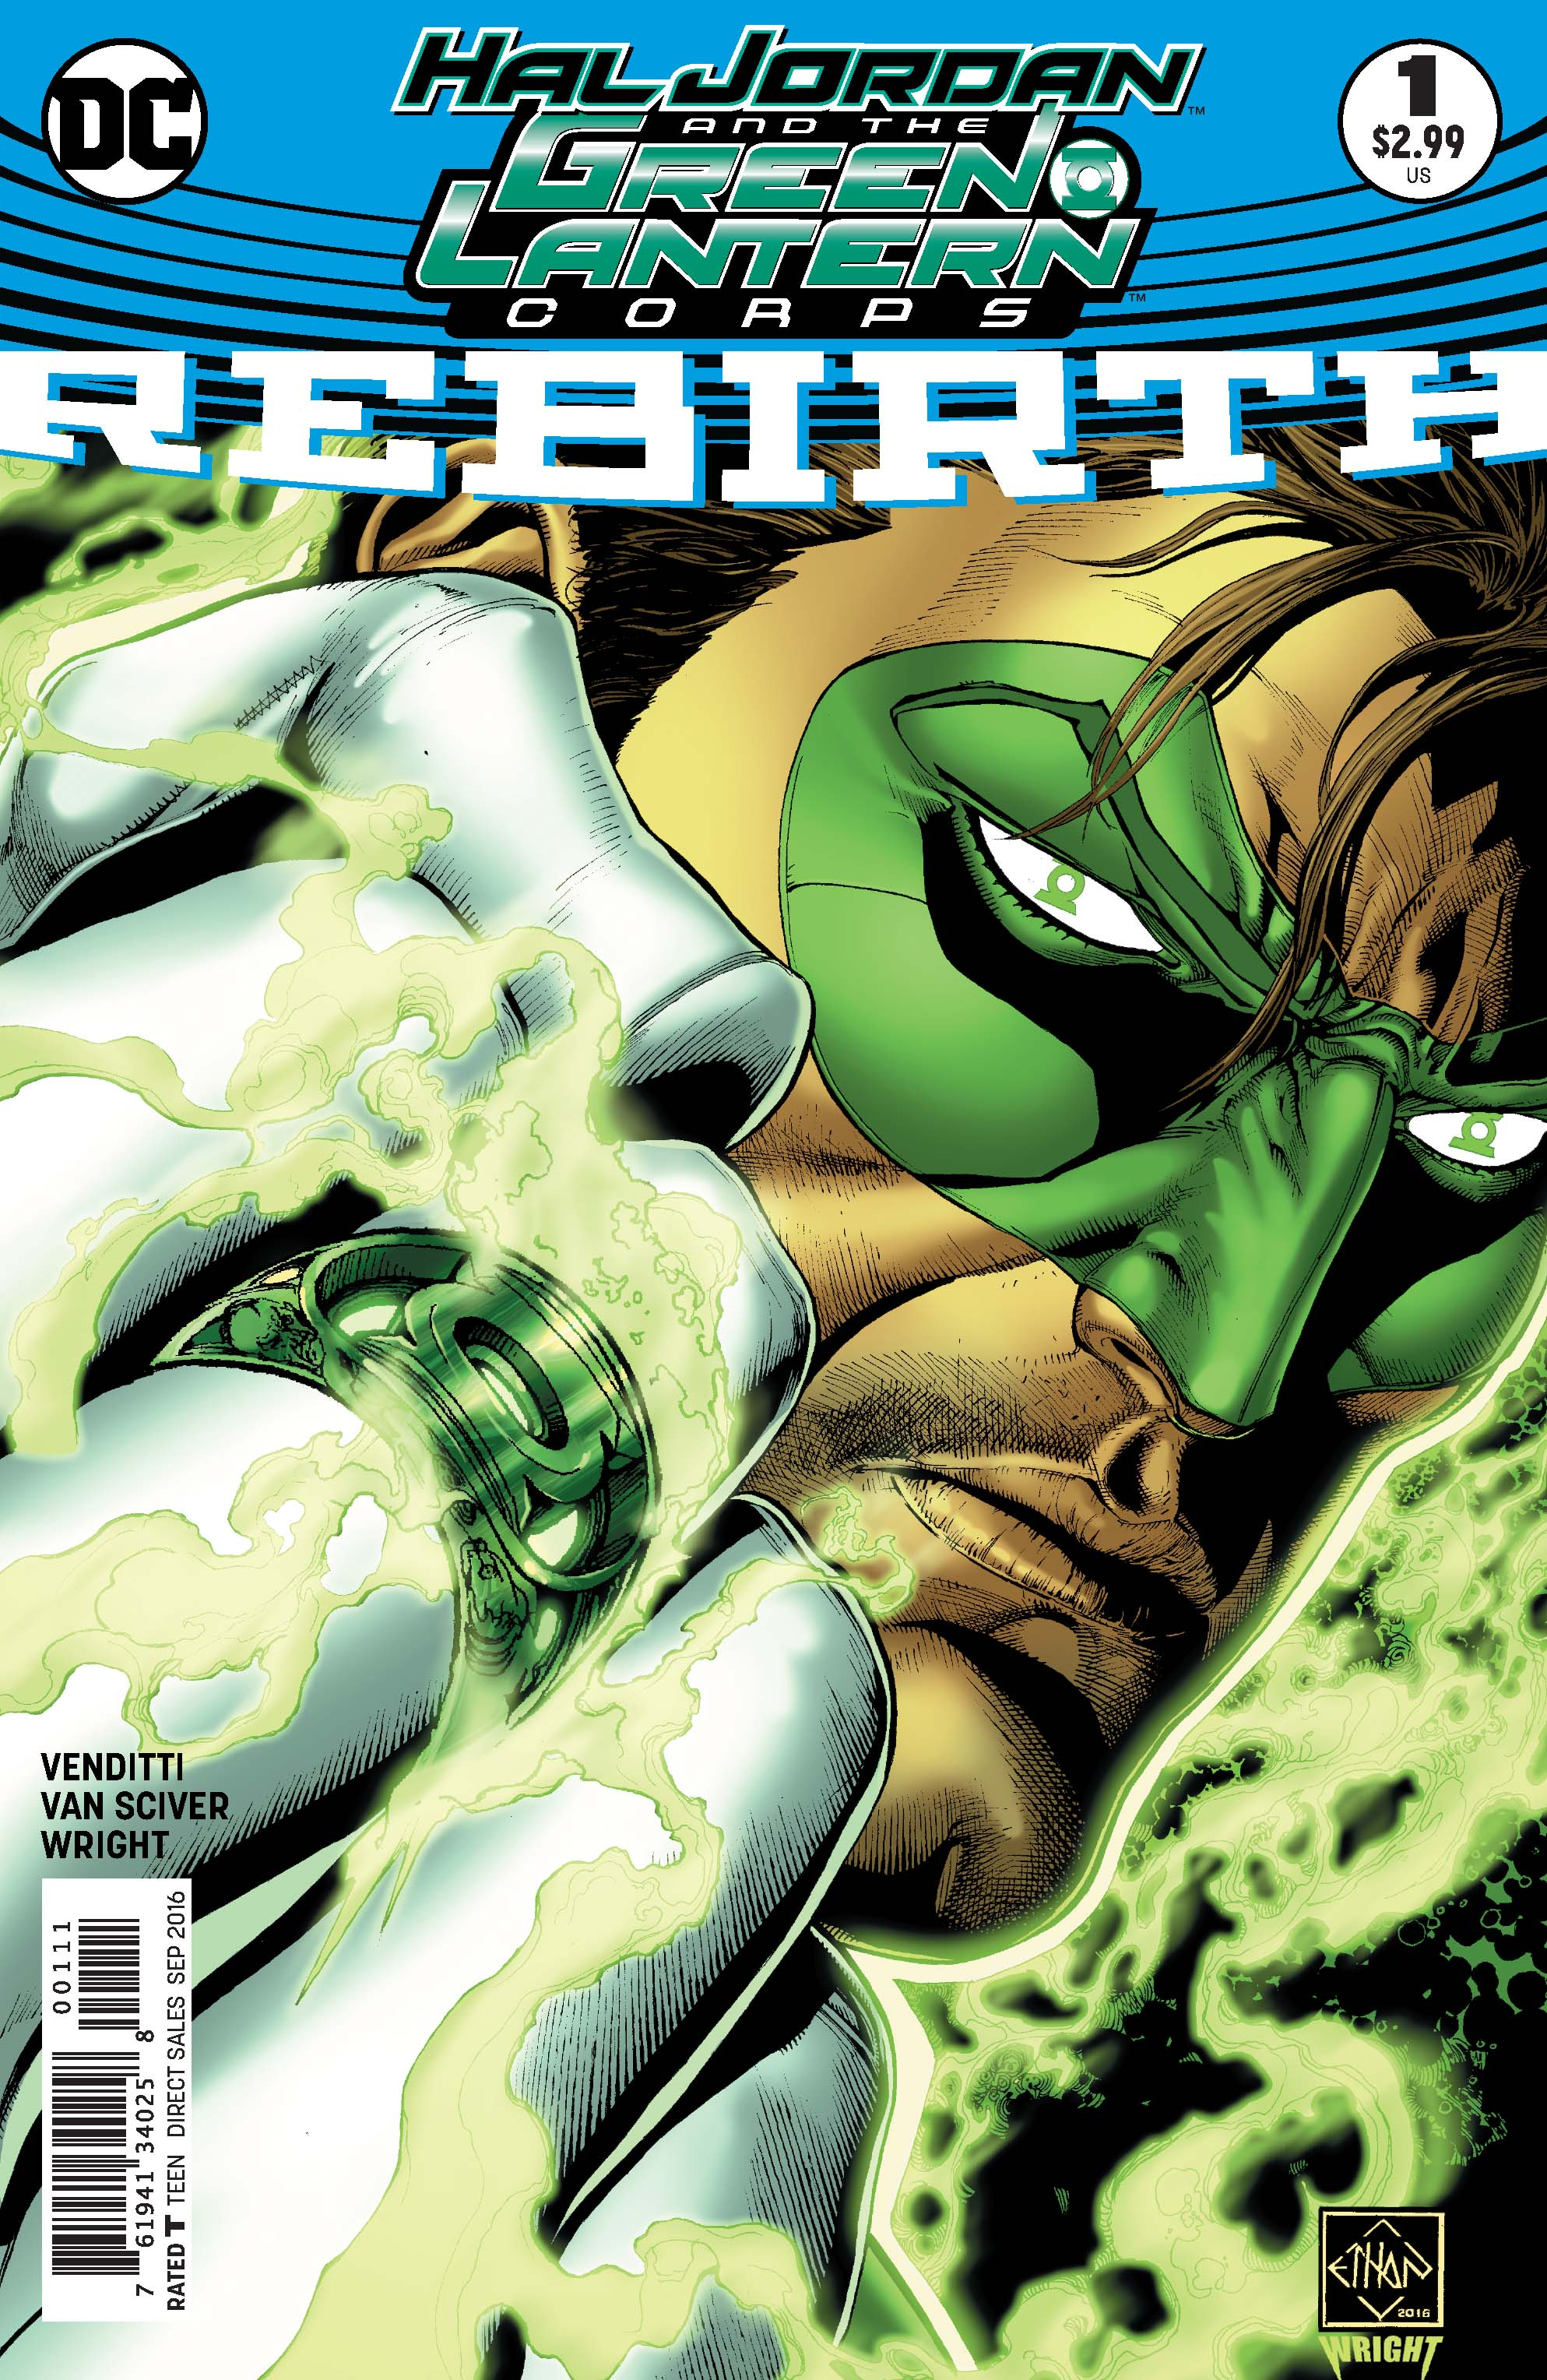 Images from 'Hal Jordan and the Green Lantern Corp: Rebirth #1'